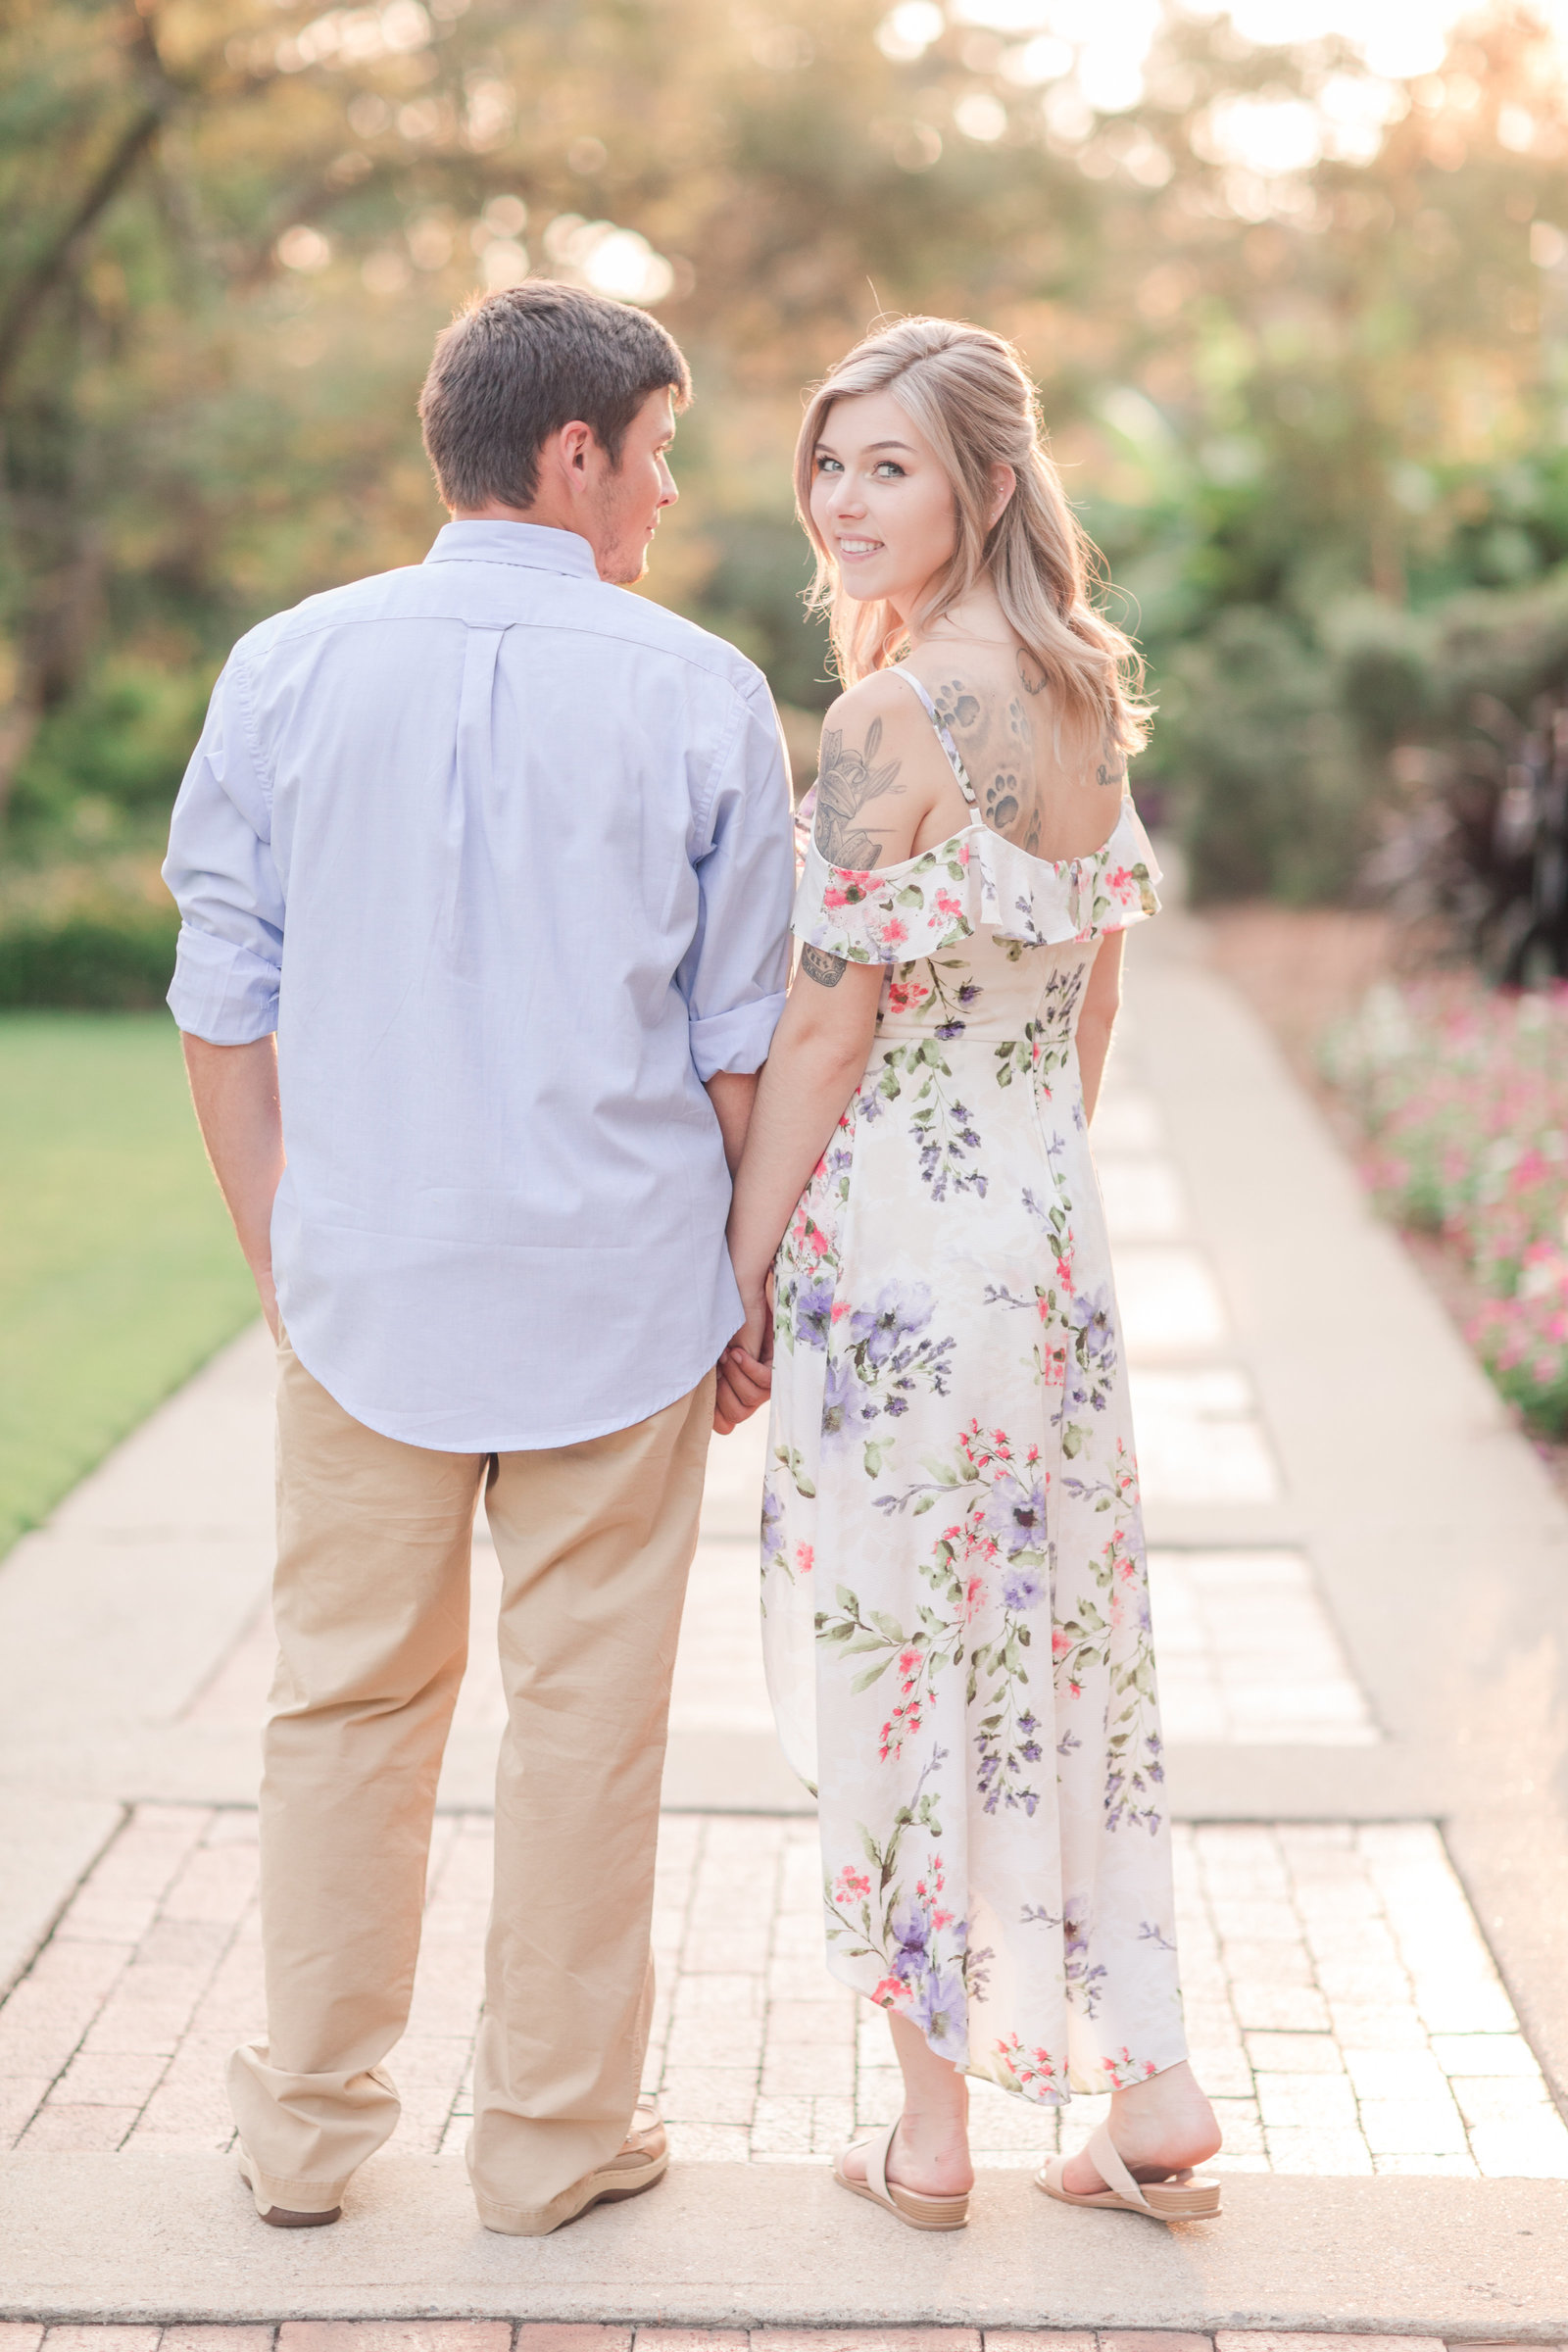 Jennifer B Photography-Sandhills Horticultural Gardens Engagement-Pinehurst NC-Cody and Kayla-2019-0217